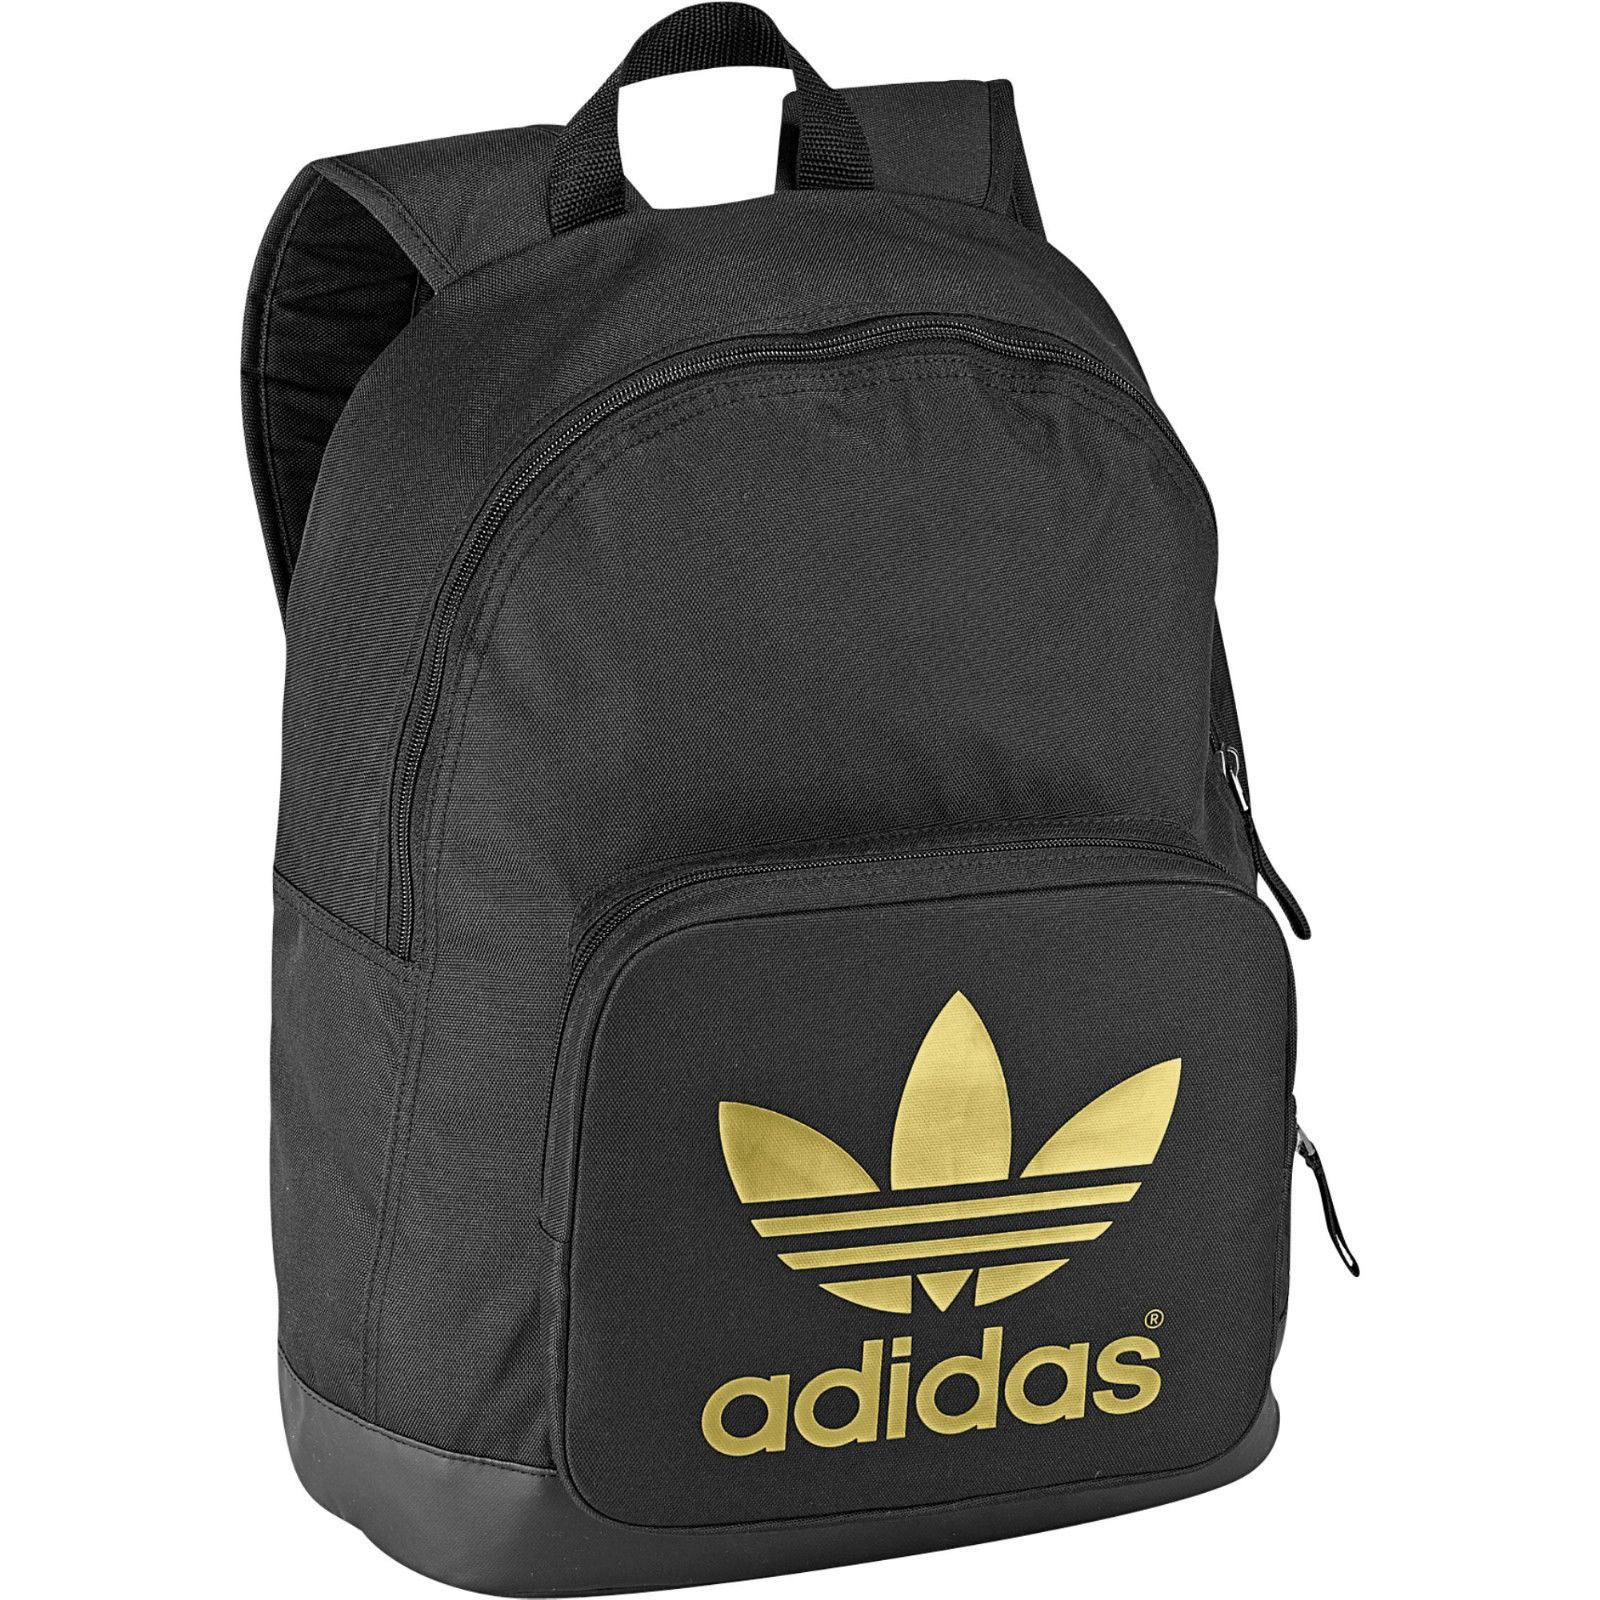 86e9b0836d Adidas Originals Backpacks Mens Boys Girls Adidas School Backbags Rucksacks  | eBay